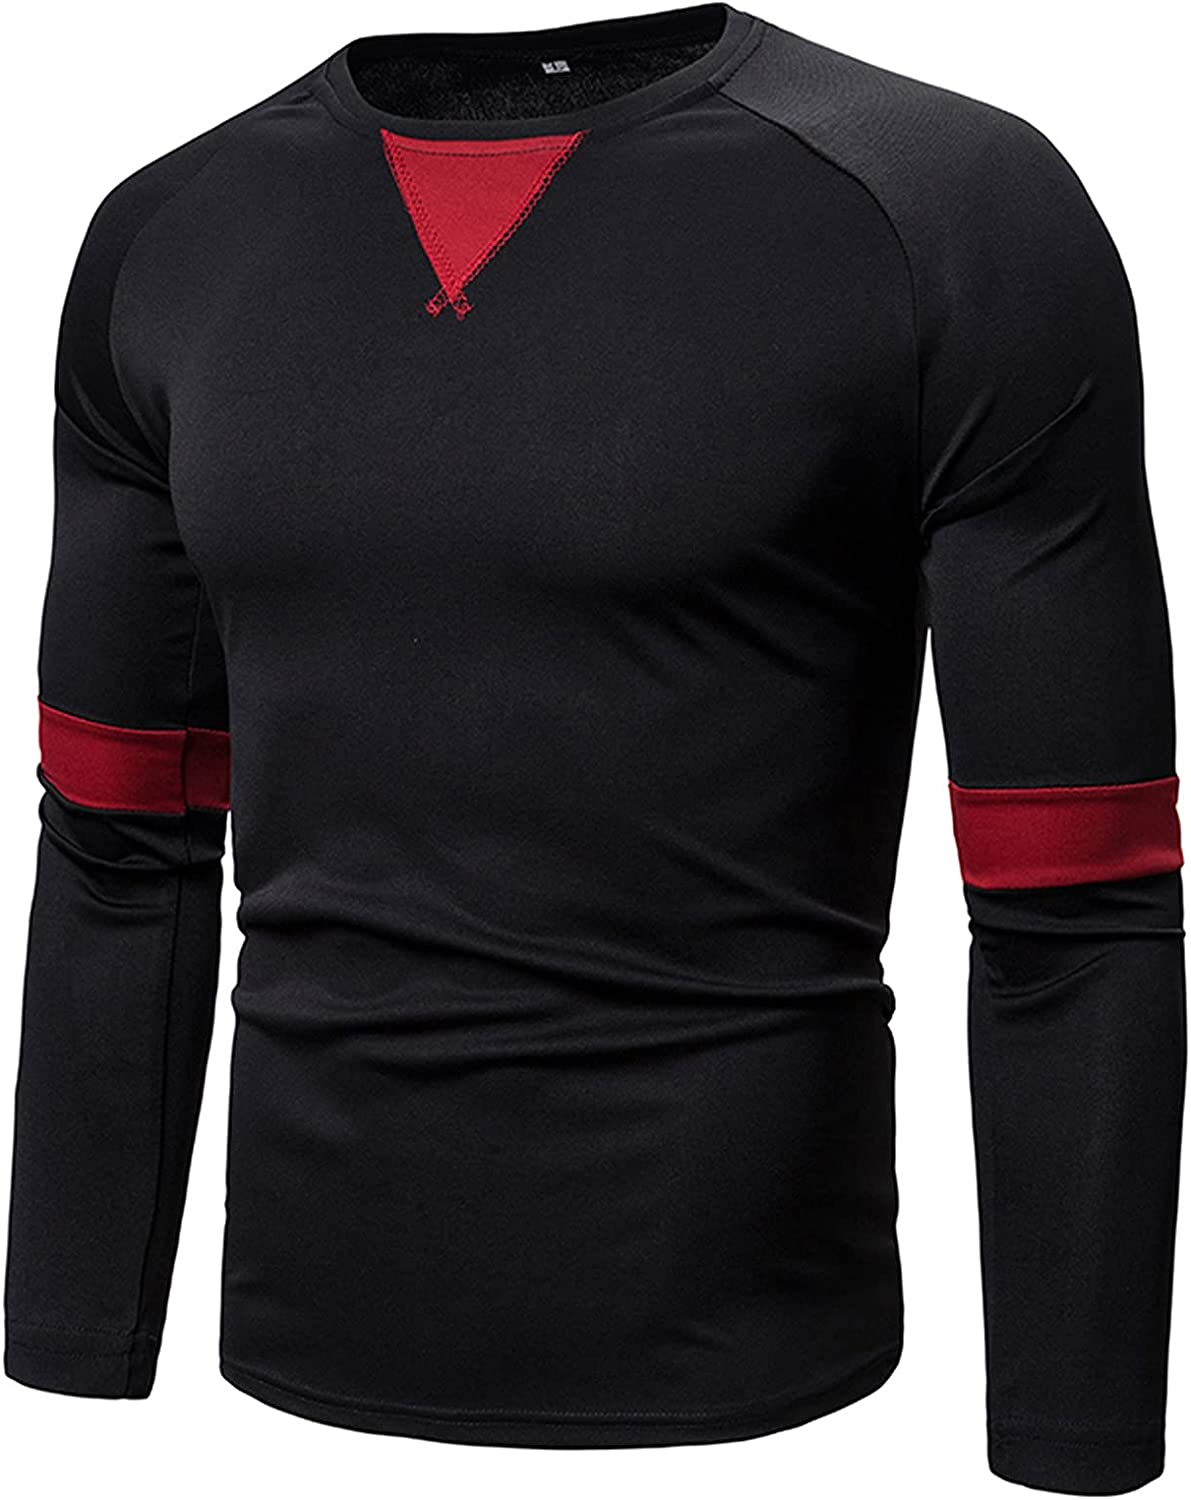 XXBR Long Sleeve T-shirts for Mens, 2021 New Fall Splice Patchwork Workout Athletics Sports Casual Crewneck Tee Tops